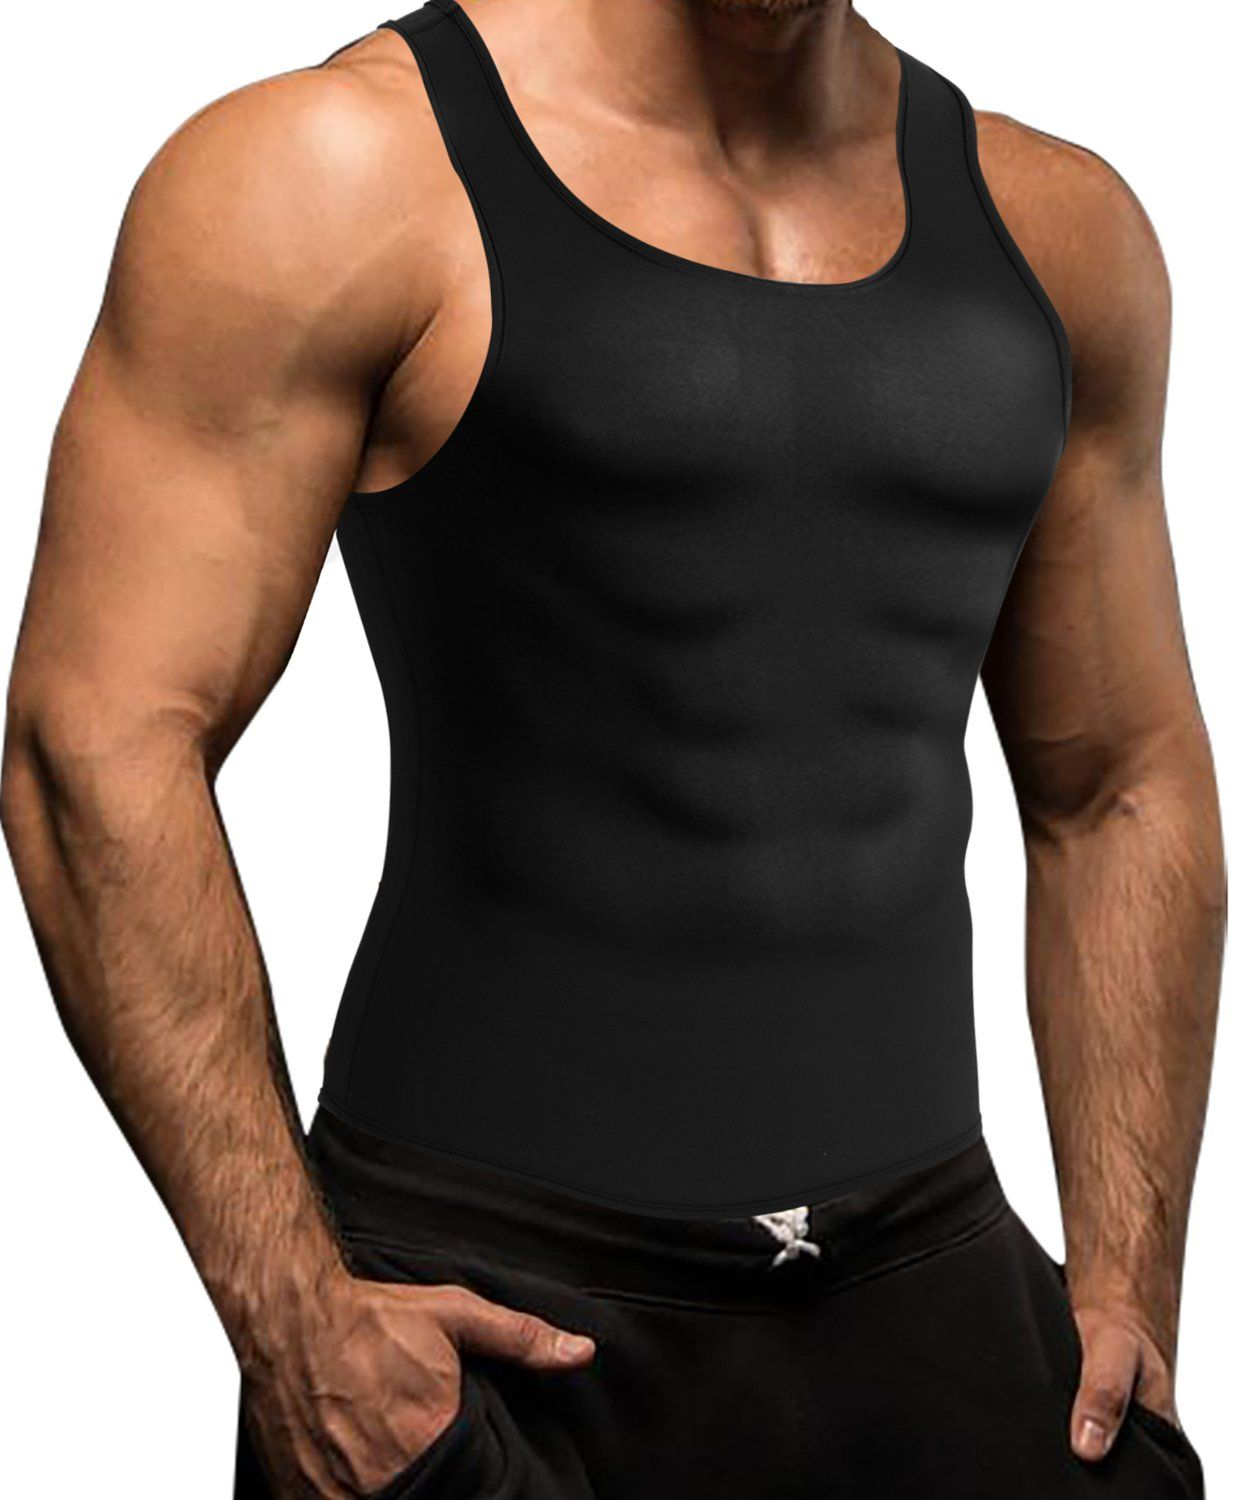 d684aa42b5fbc Men Waist Trainer Corset Vest for Weight Loss Hot Neoprene Body Shaper Tank  Top Sauna Suit